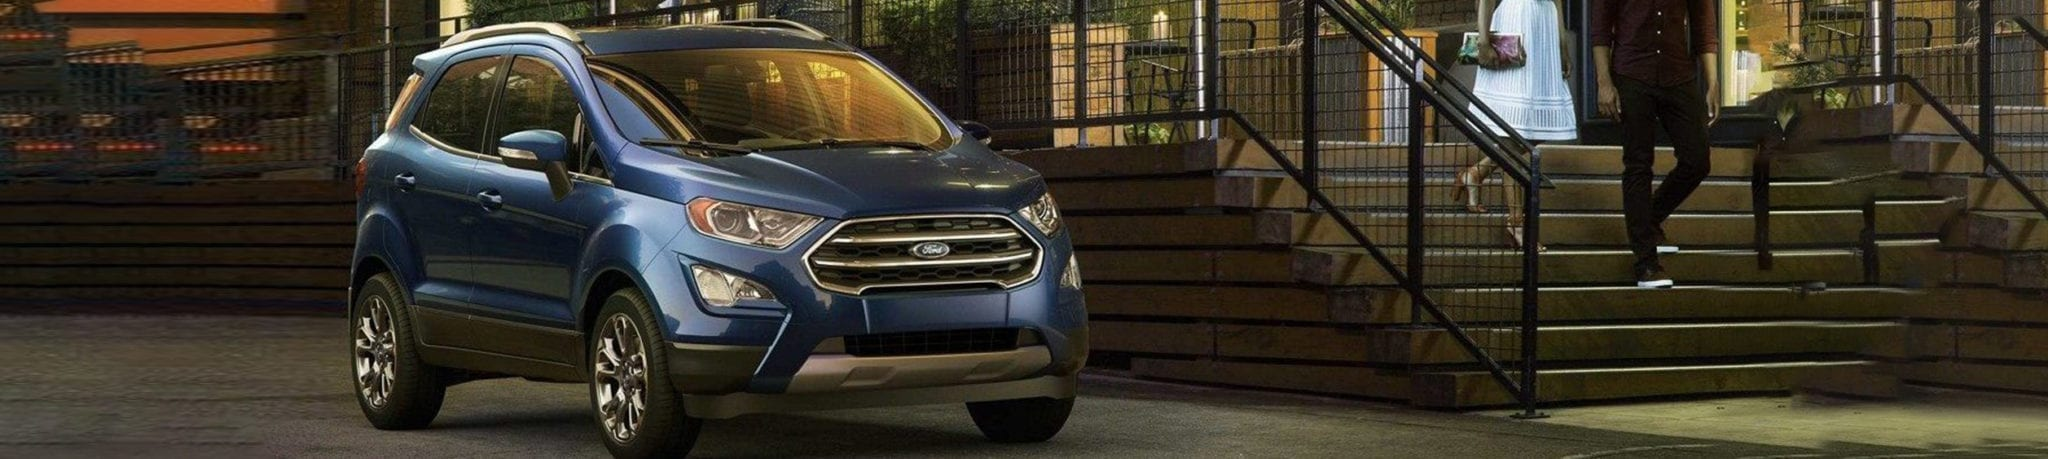 Blue Ford SUV outside